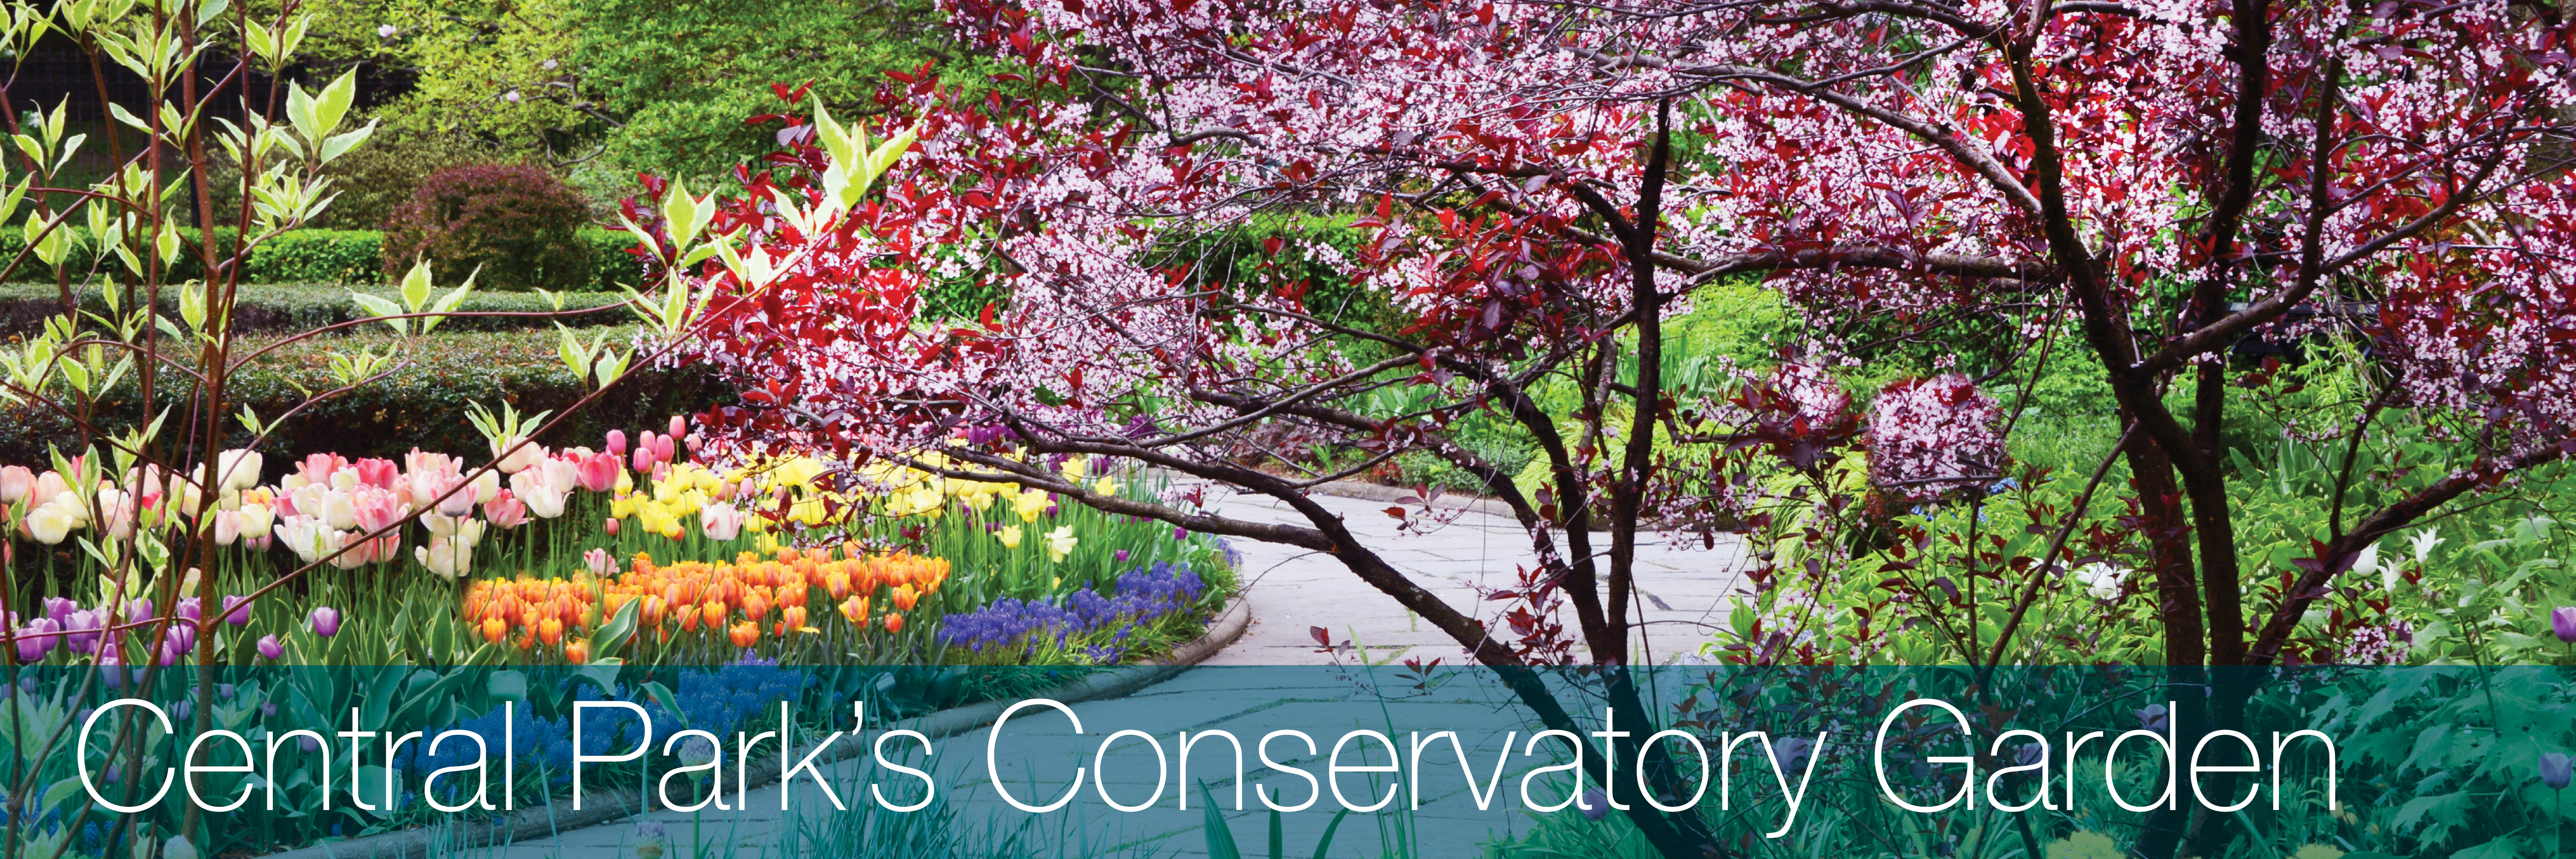 central-park-conservatory-garden-1